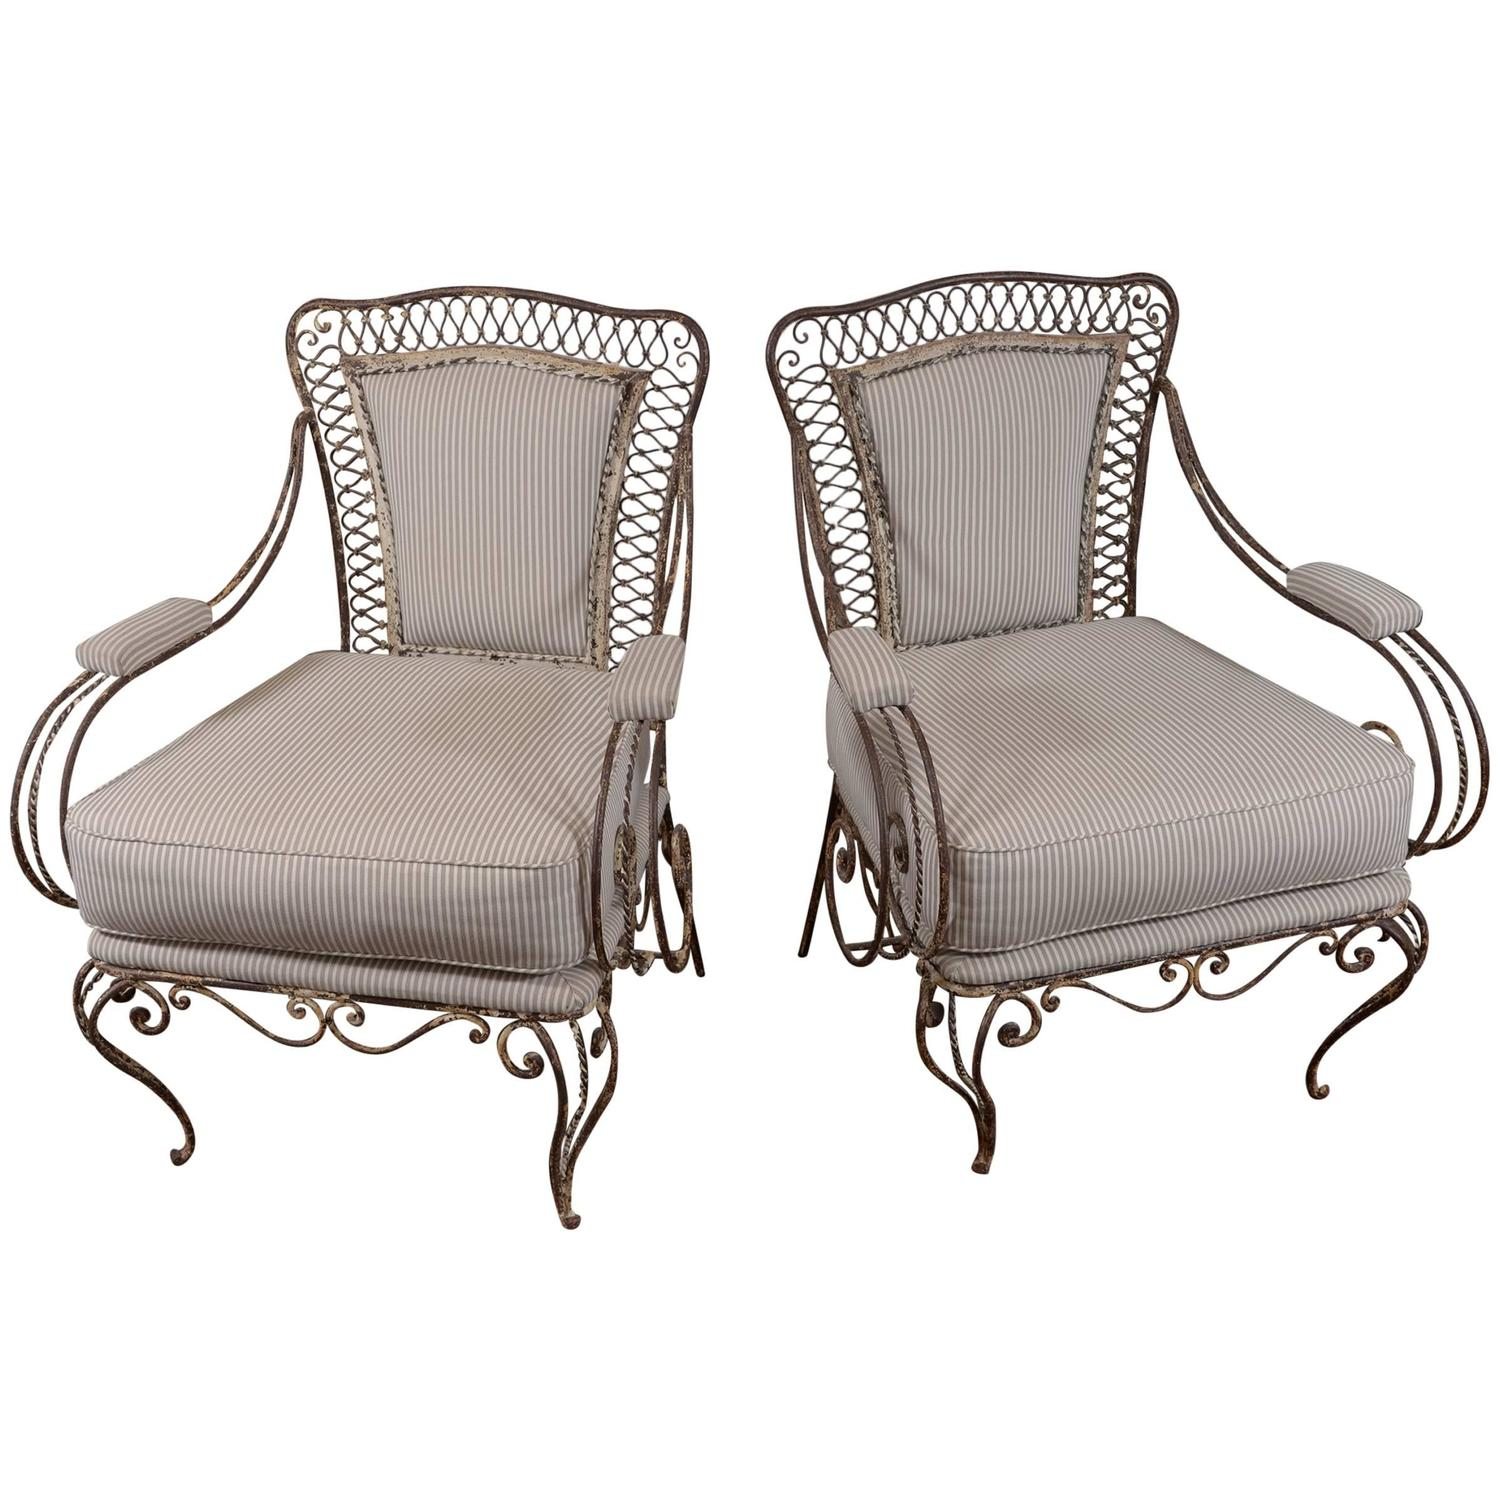 French iron garden chairs circa 1920 at 1stdibs French metal garden furniture